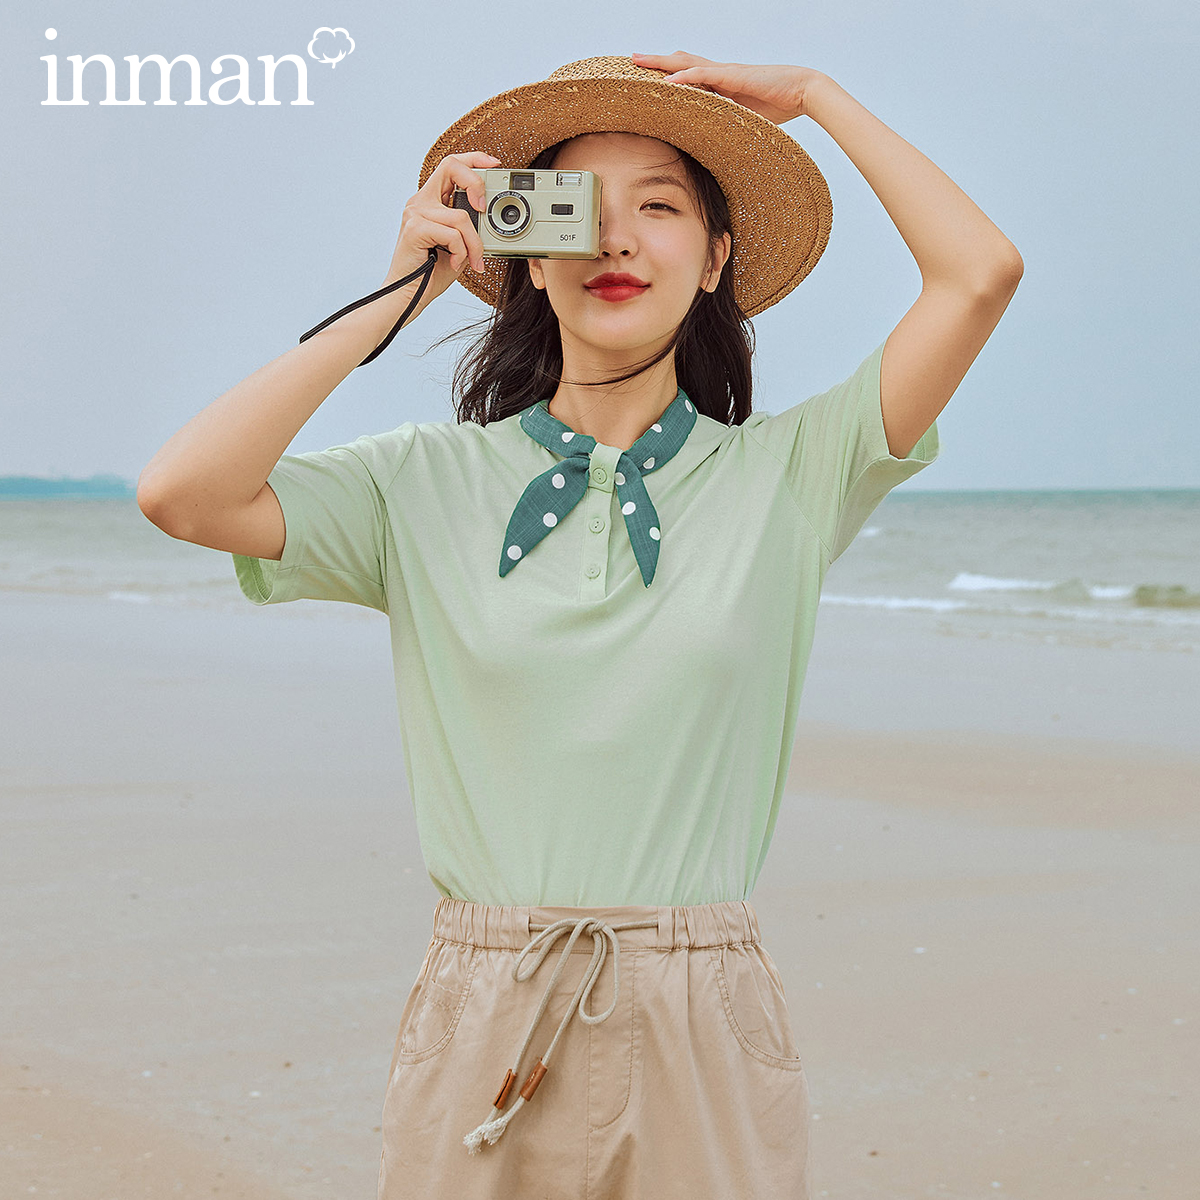 INMAN  Vintage T-Shirt 2020 New Arrival Loose Style Polka Dot  Collar Artsy Women Tops